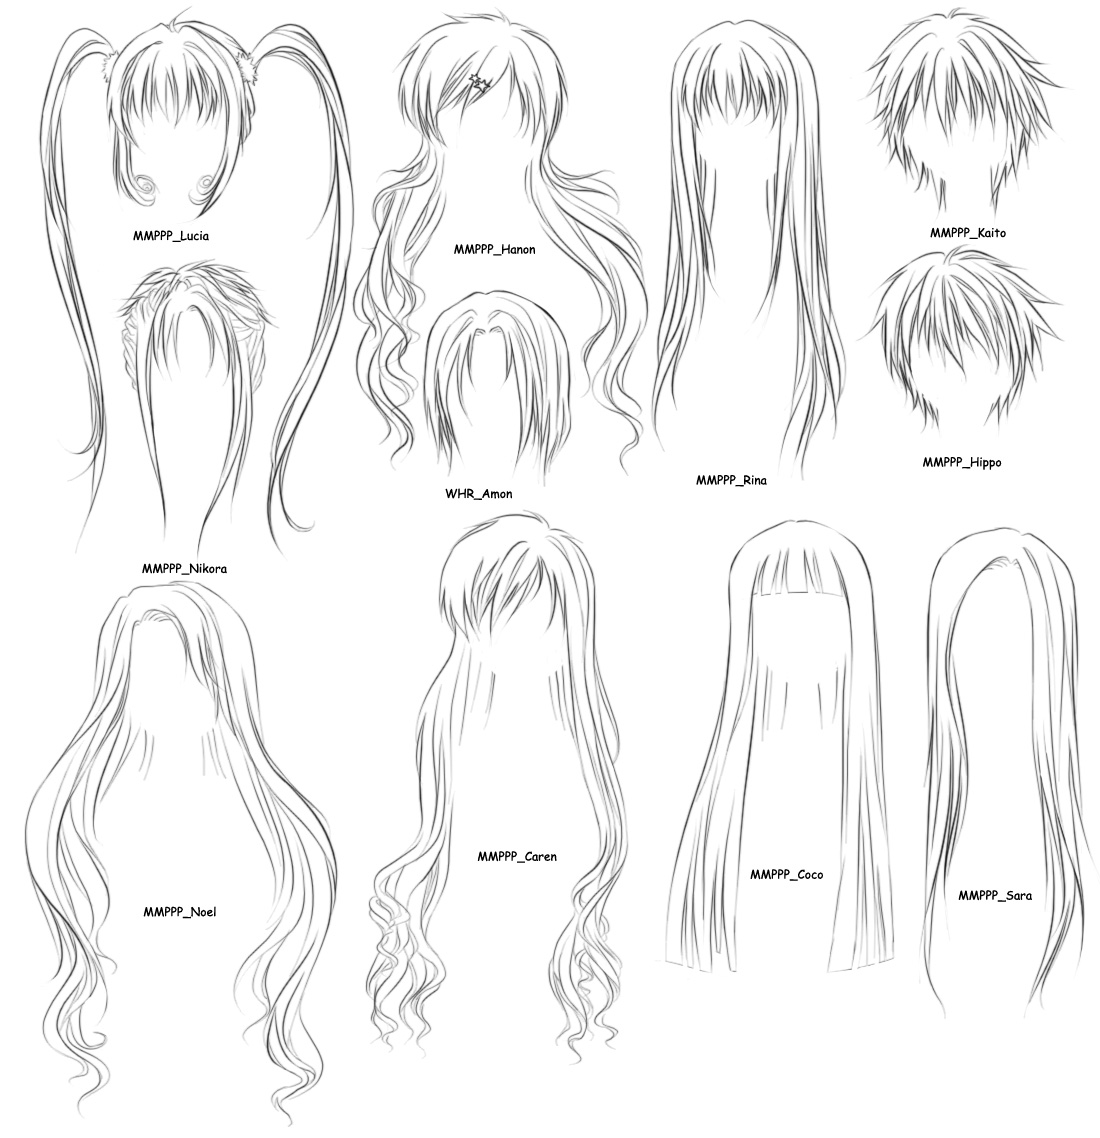 hairstyles coloring pages - photo #4